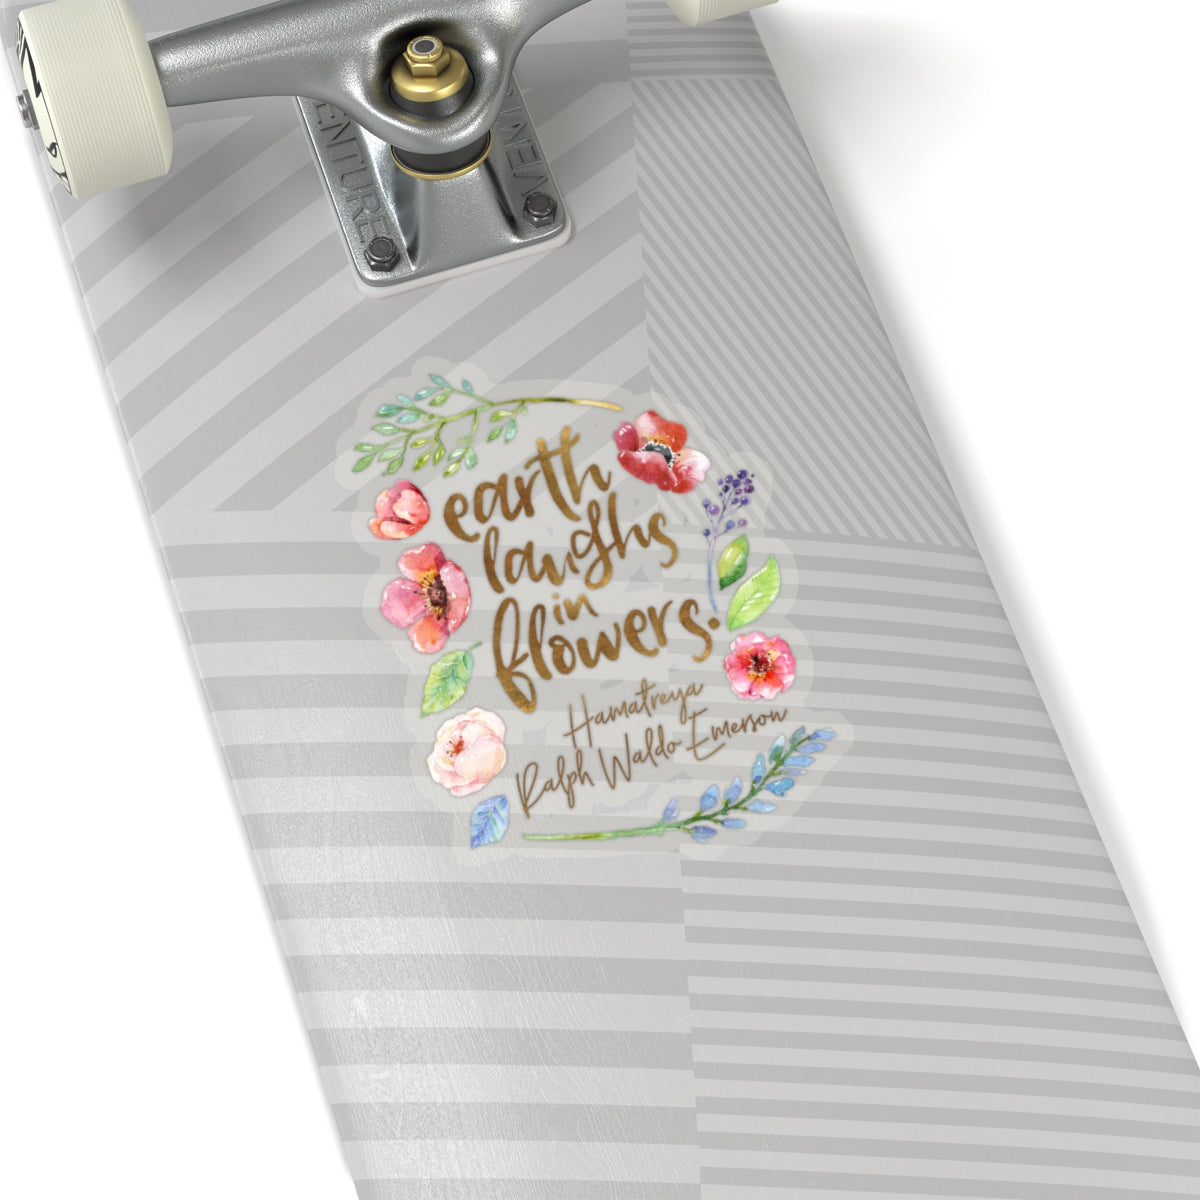 Earth laughs in flowers. Ralph Waldo Emerson Quote Sticker - LitLifeCo.